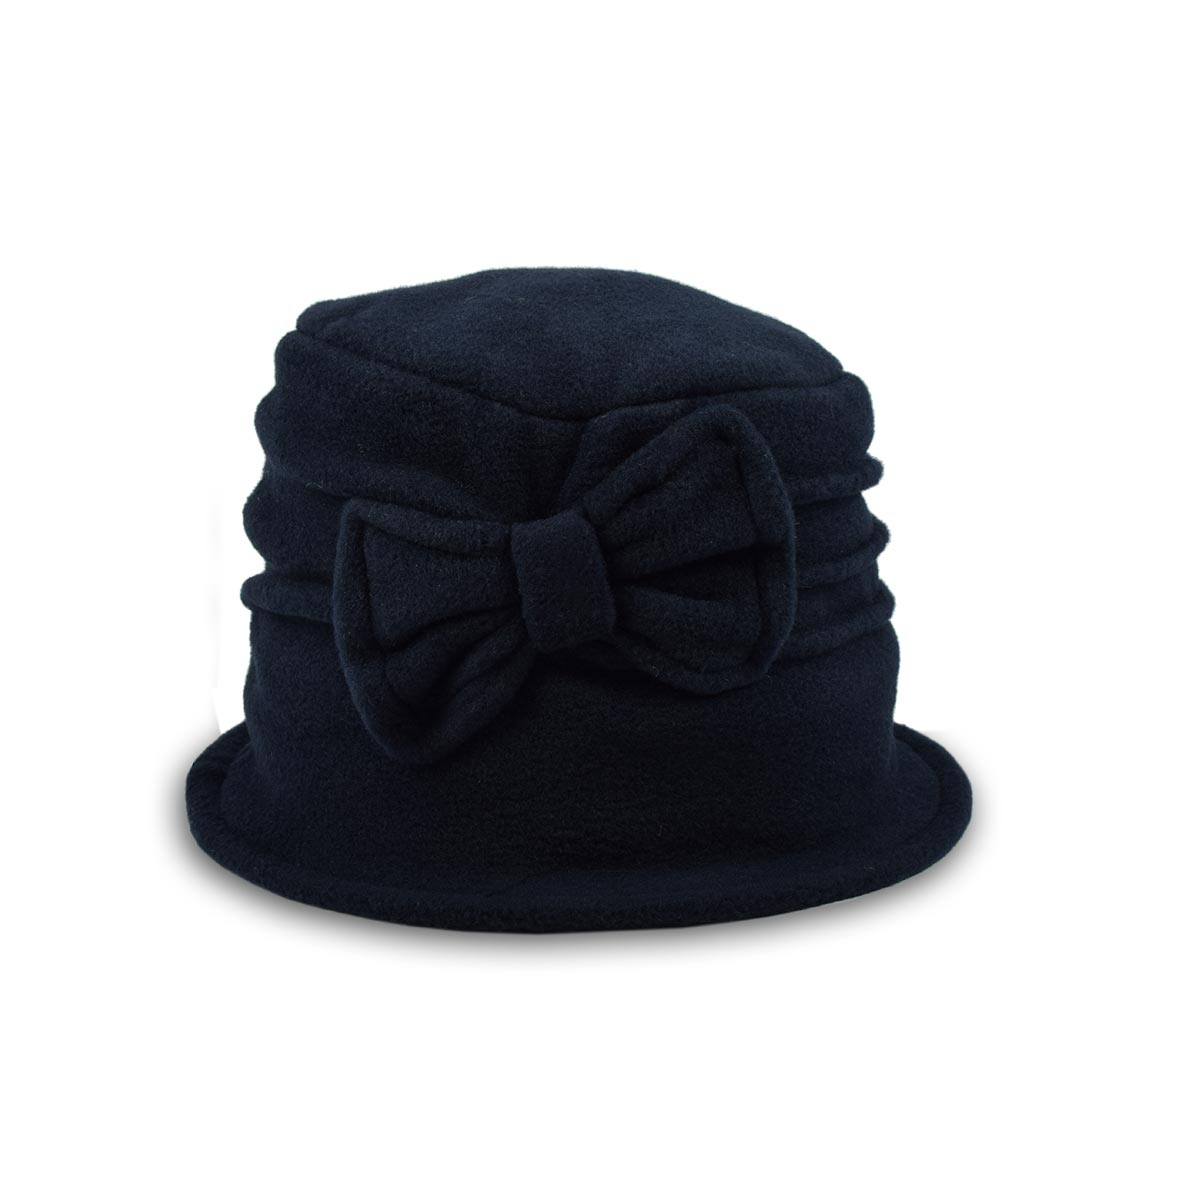 Chapeau femme polyester gros 14